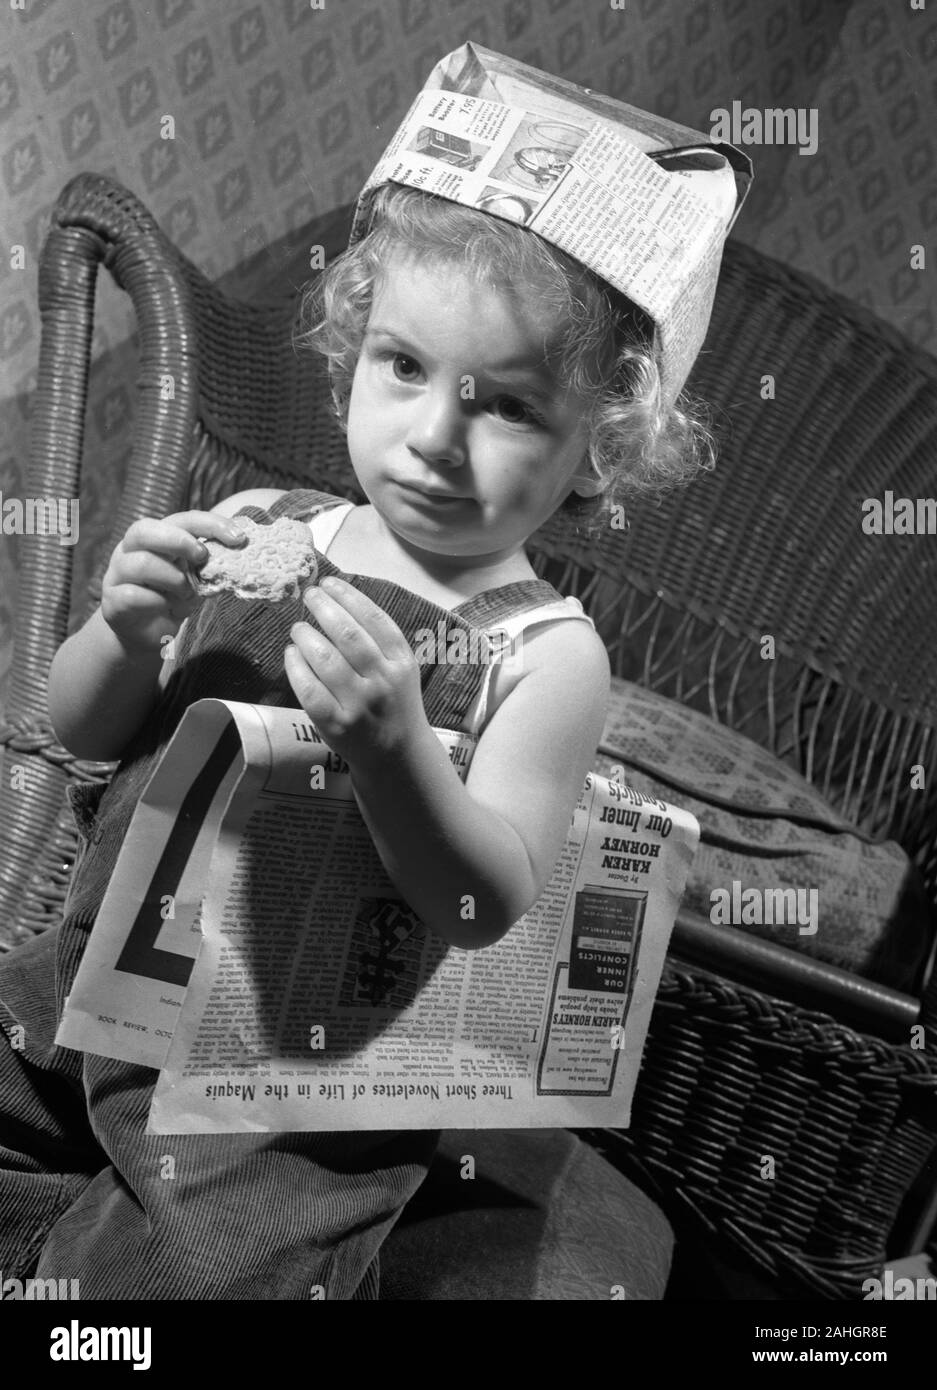 Girl with a newspaper hat Stock Photo